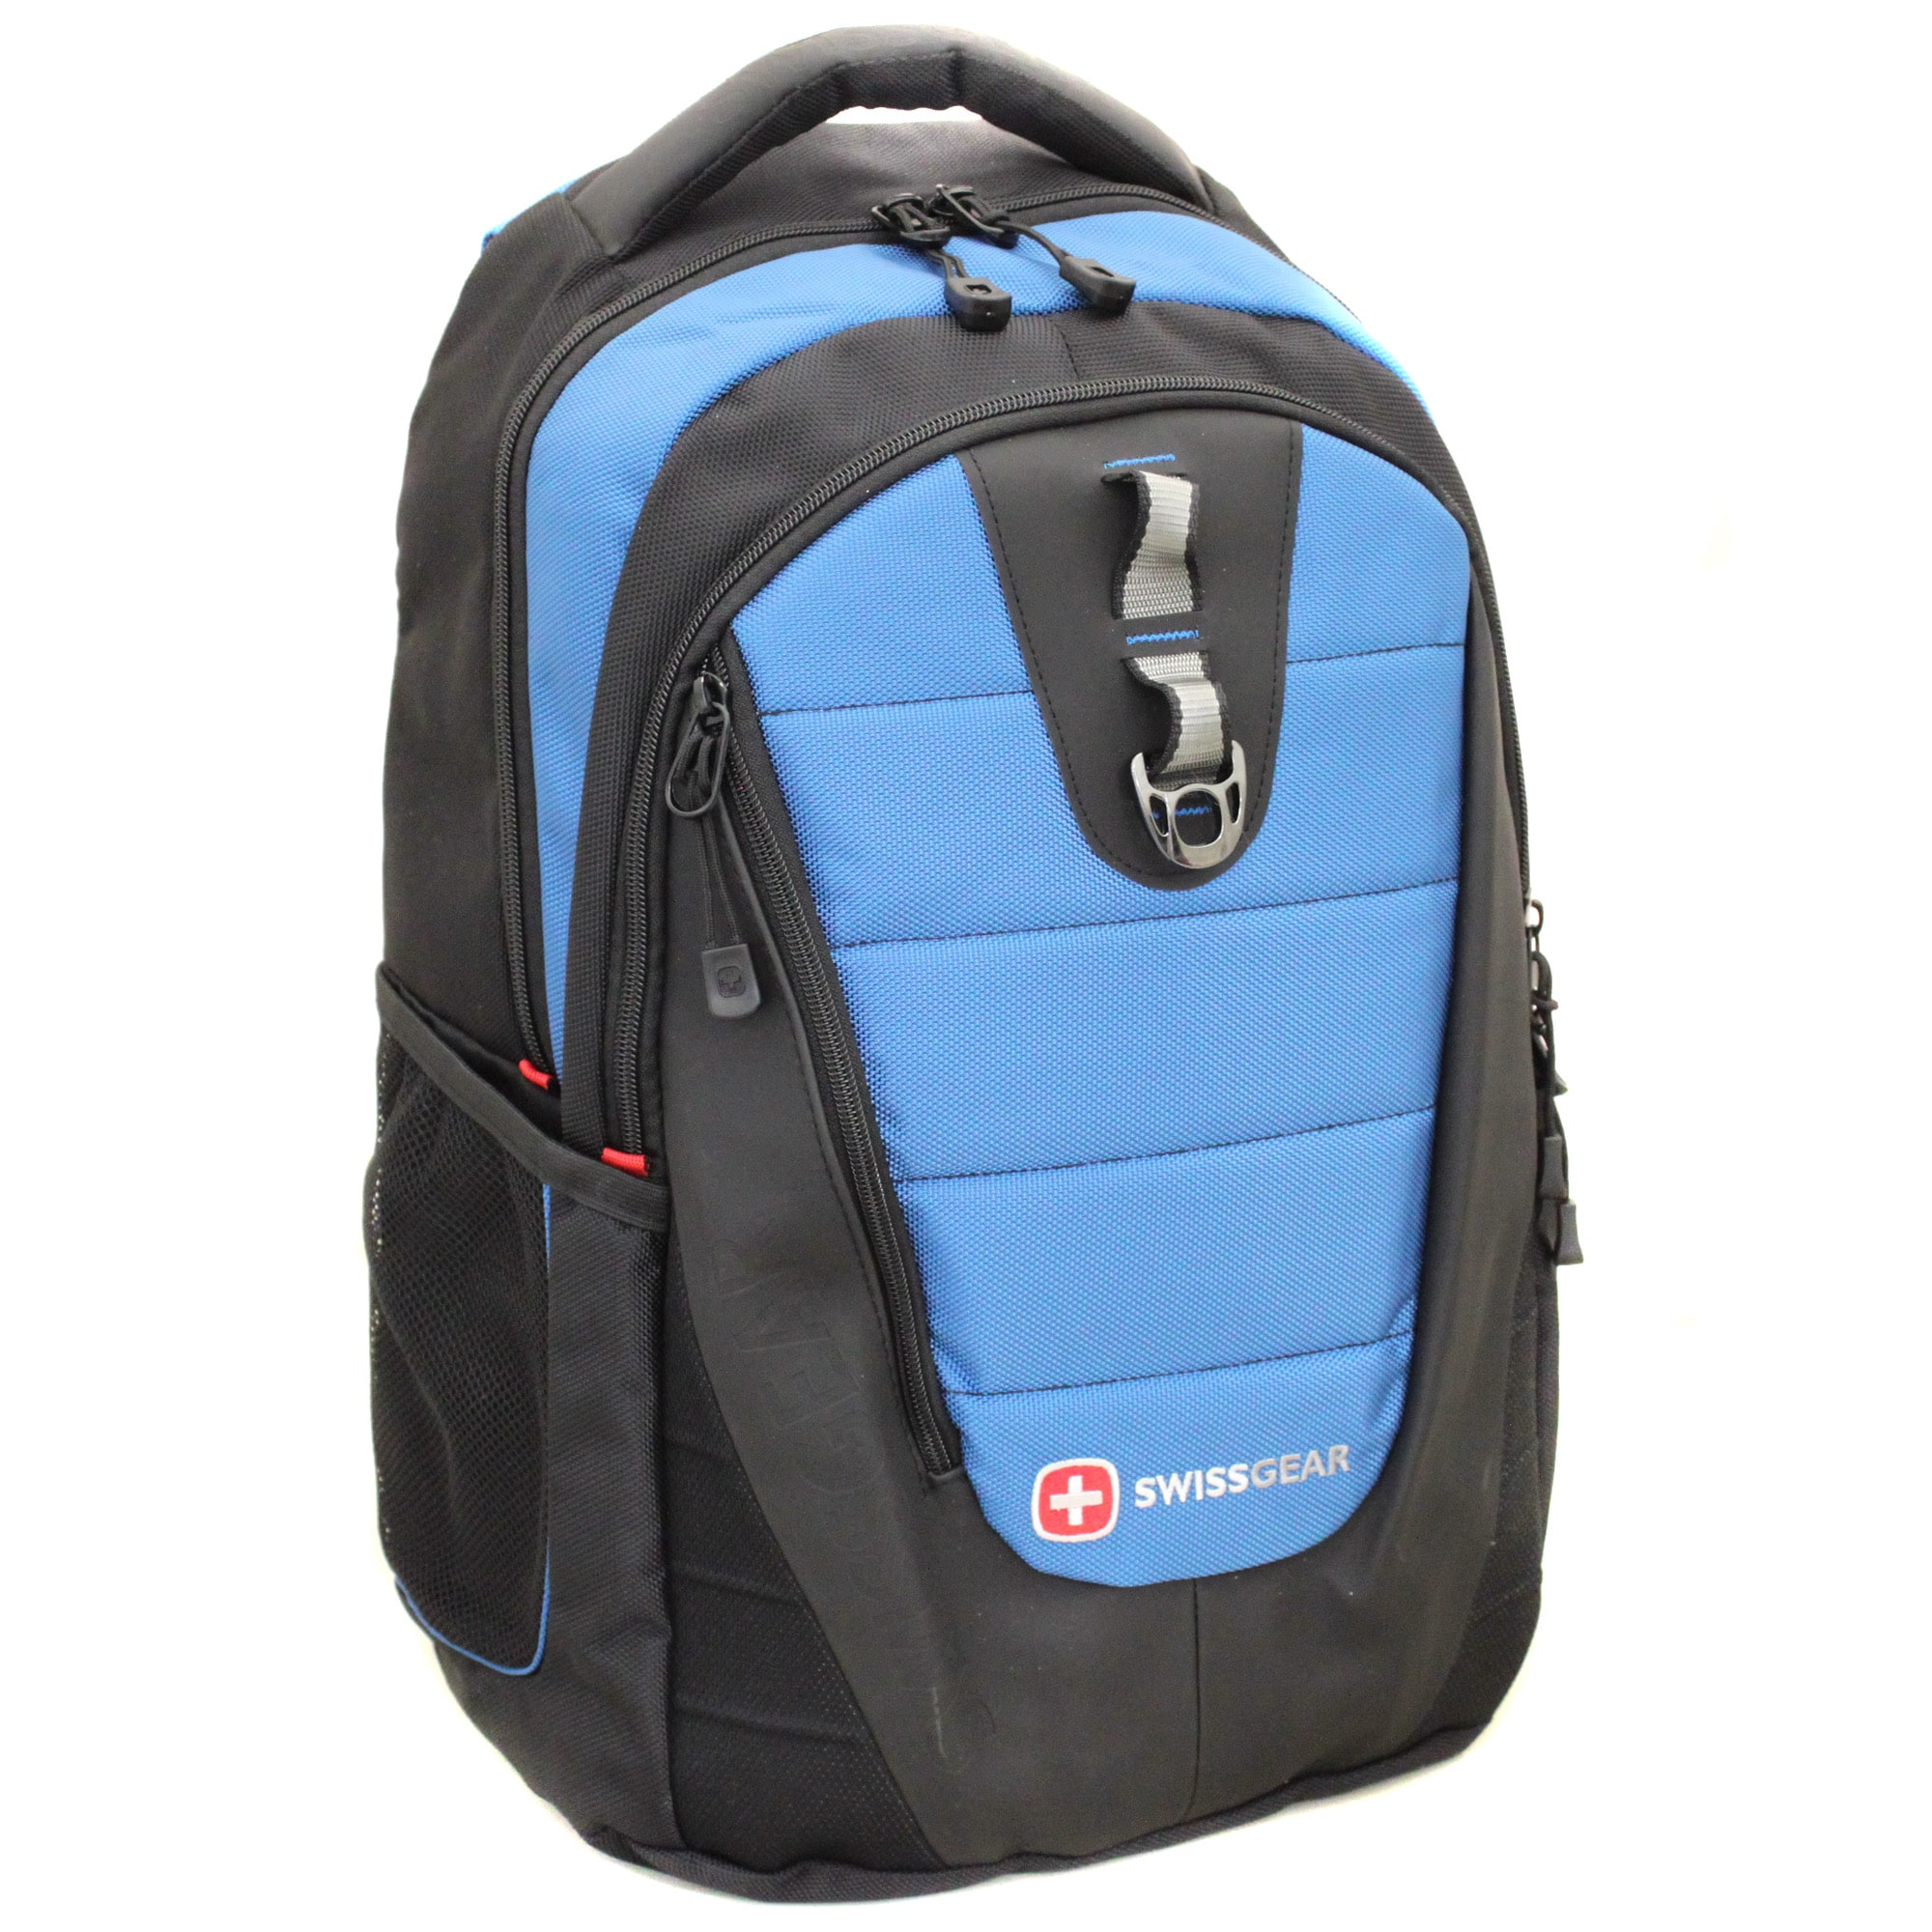 Swiss Gear Backpack Lifetime Warranty | Frog Backpack